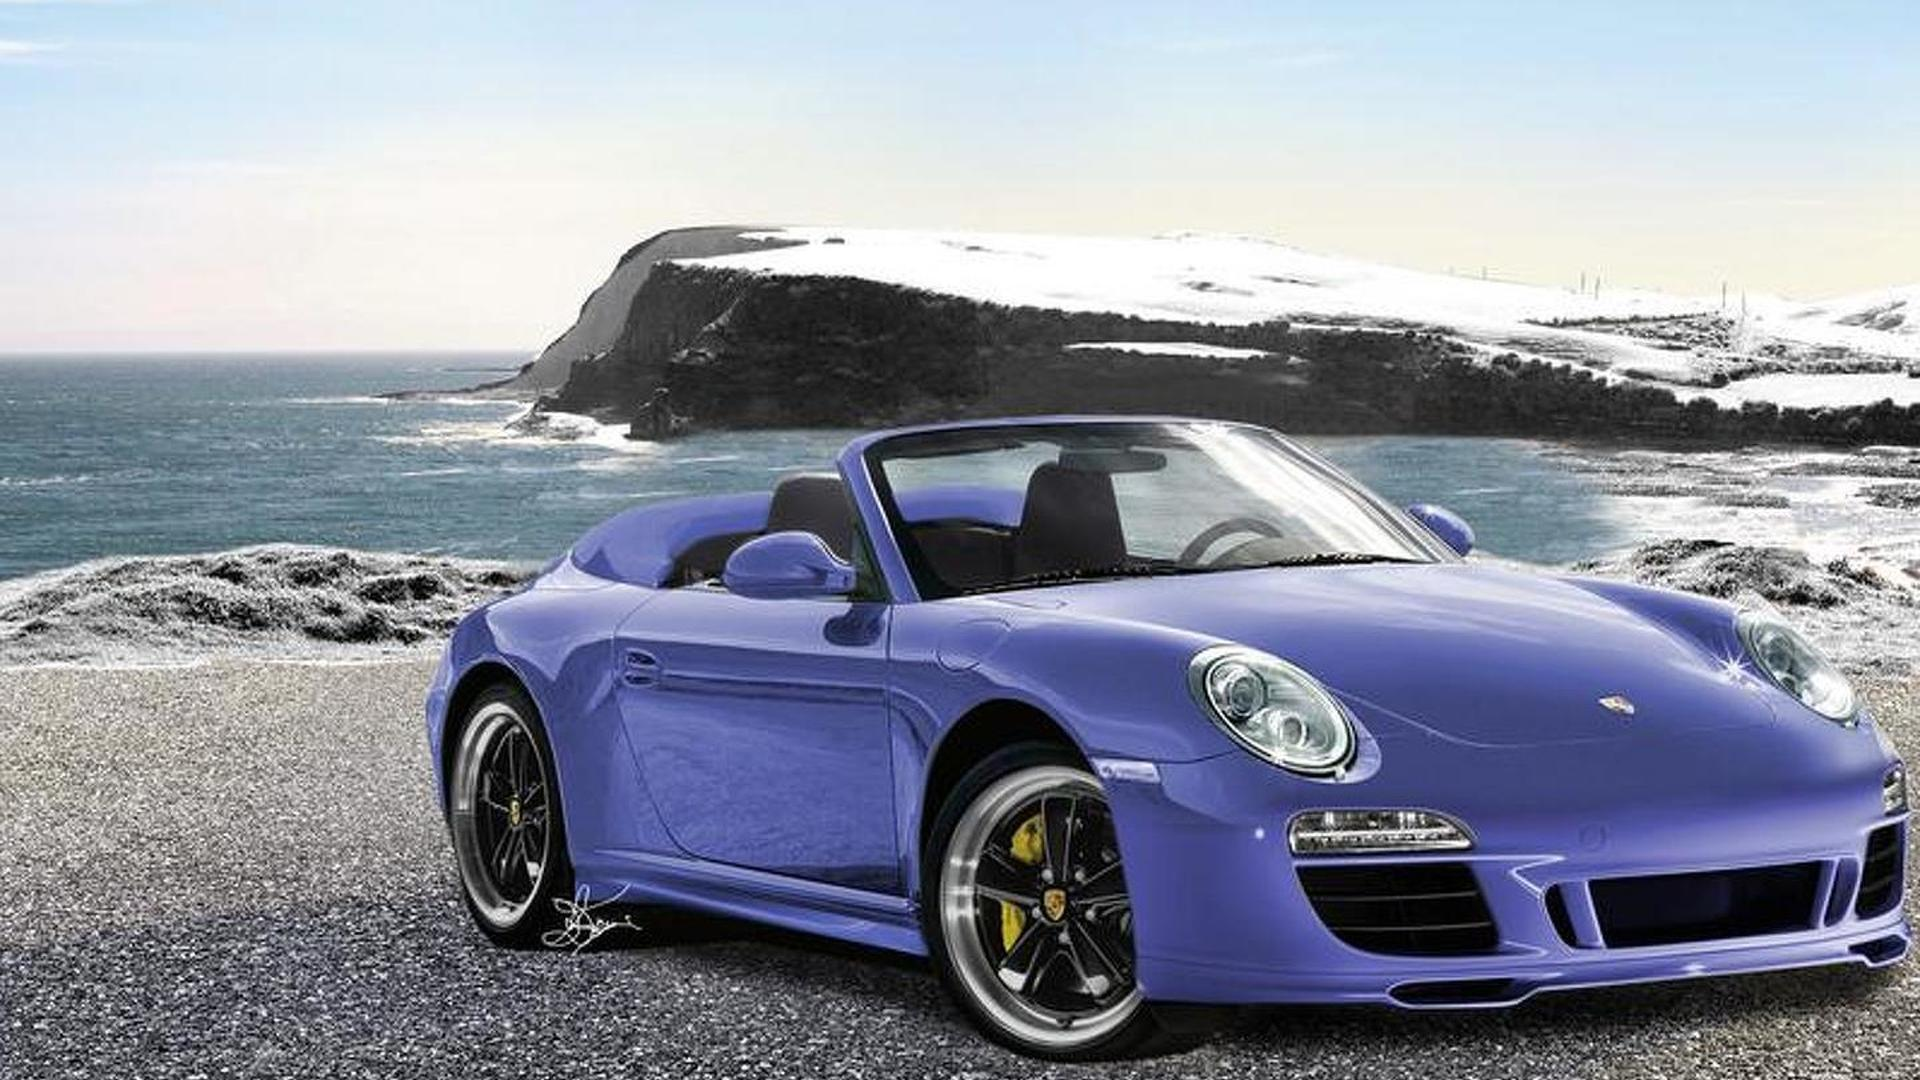 2011 Porsche 911 997 Speedster Rendered